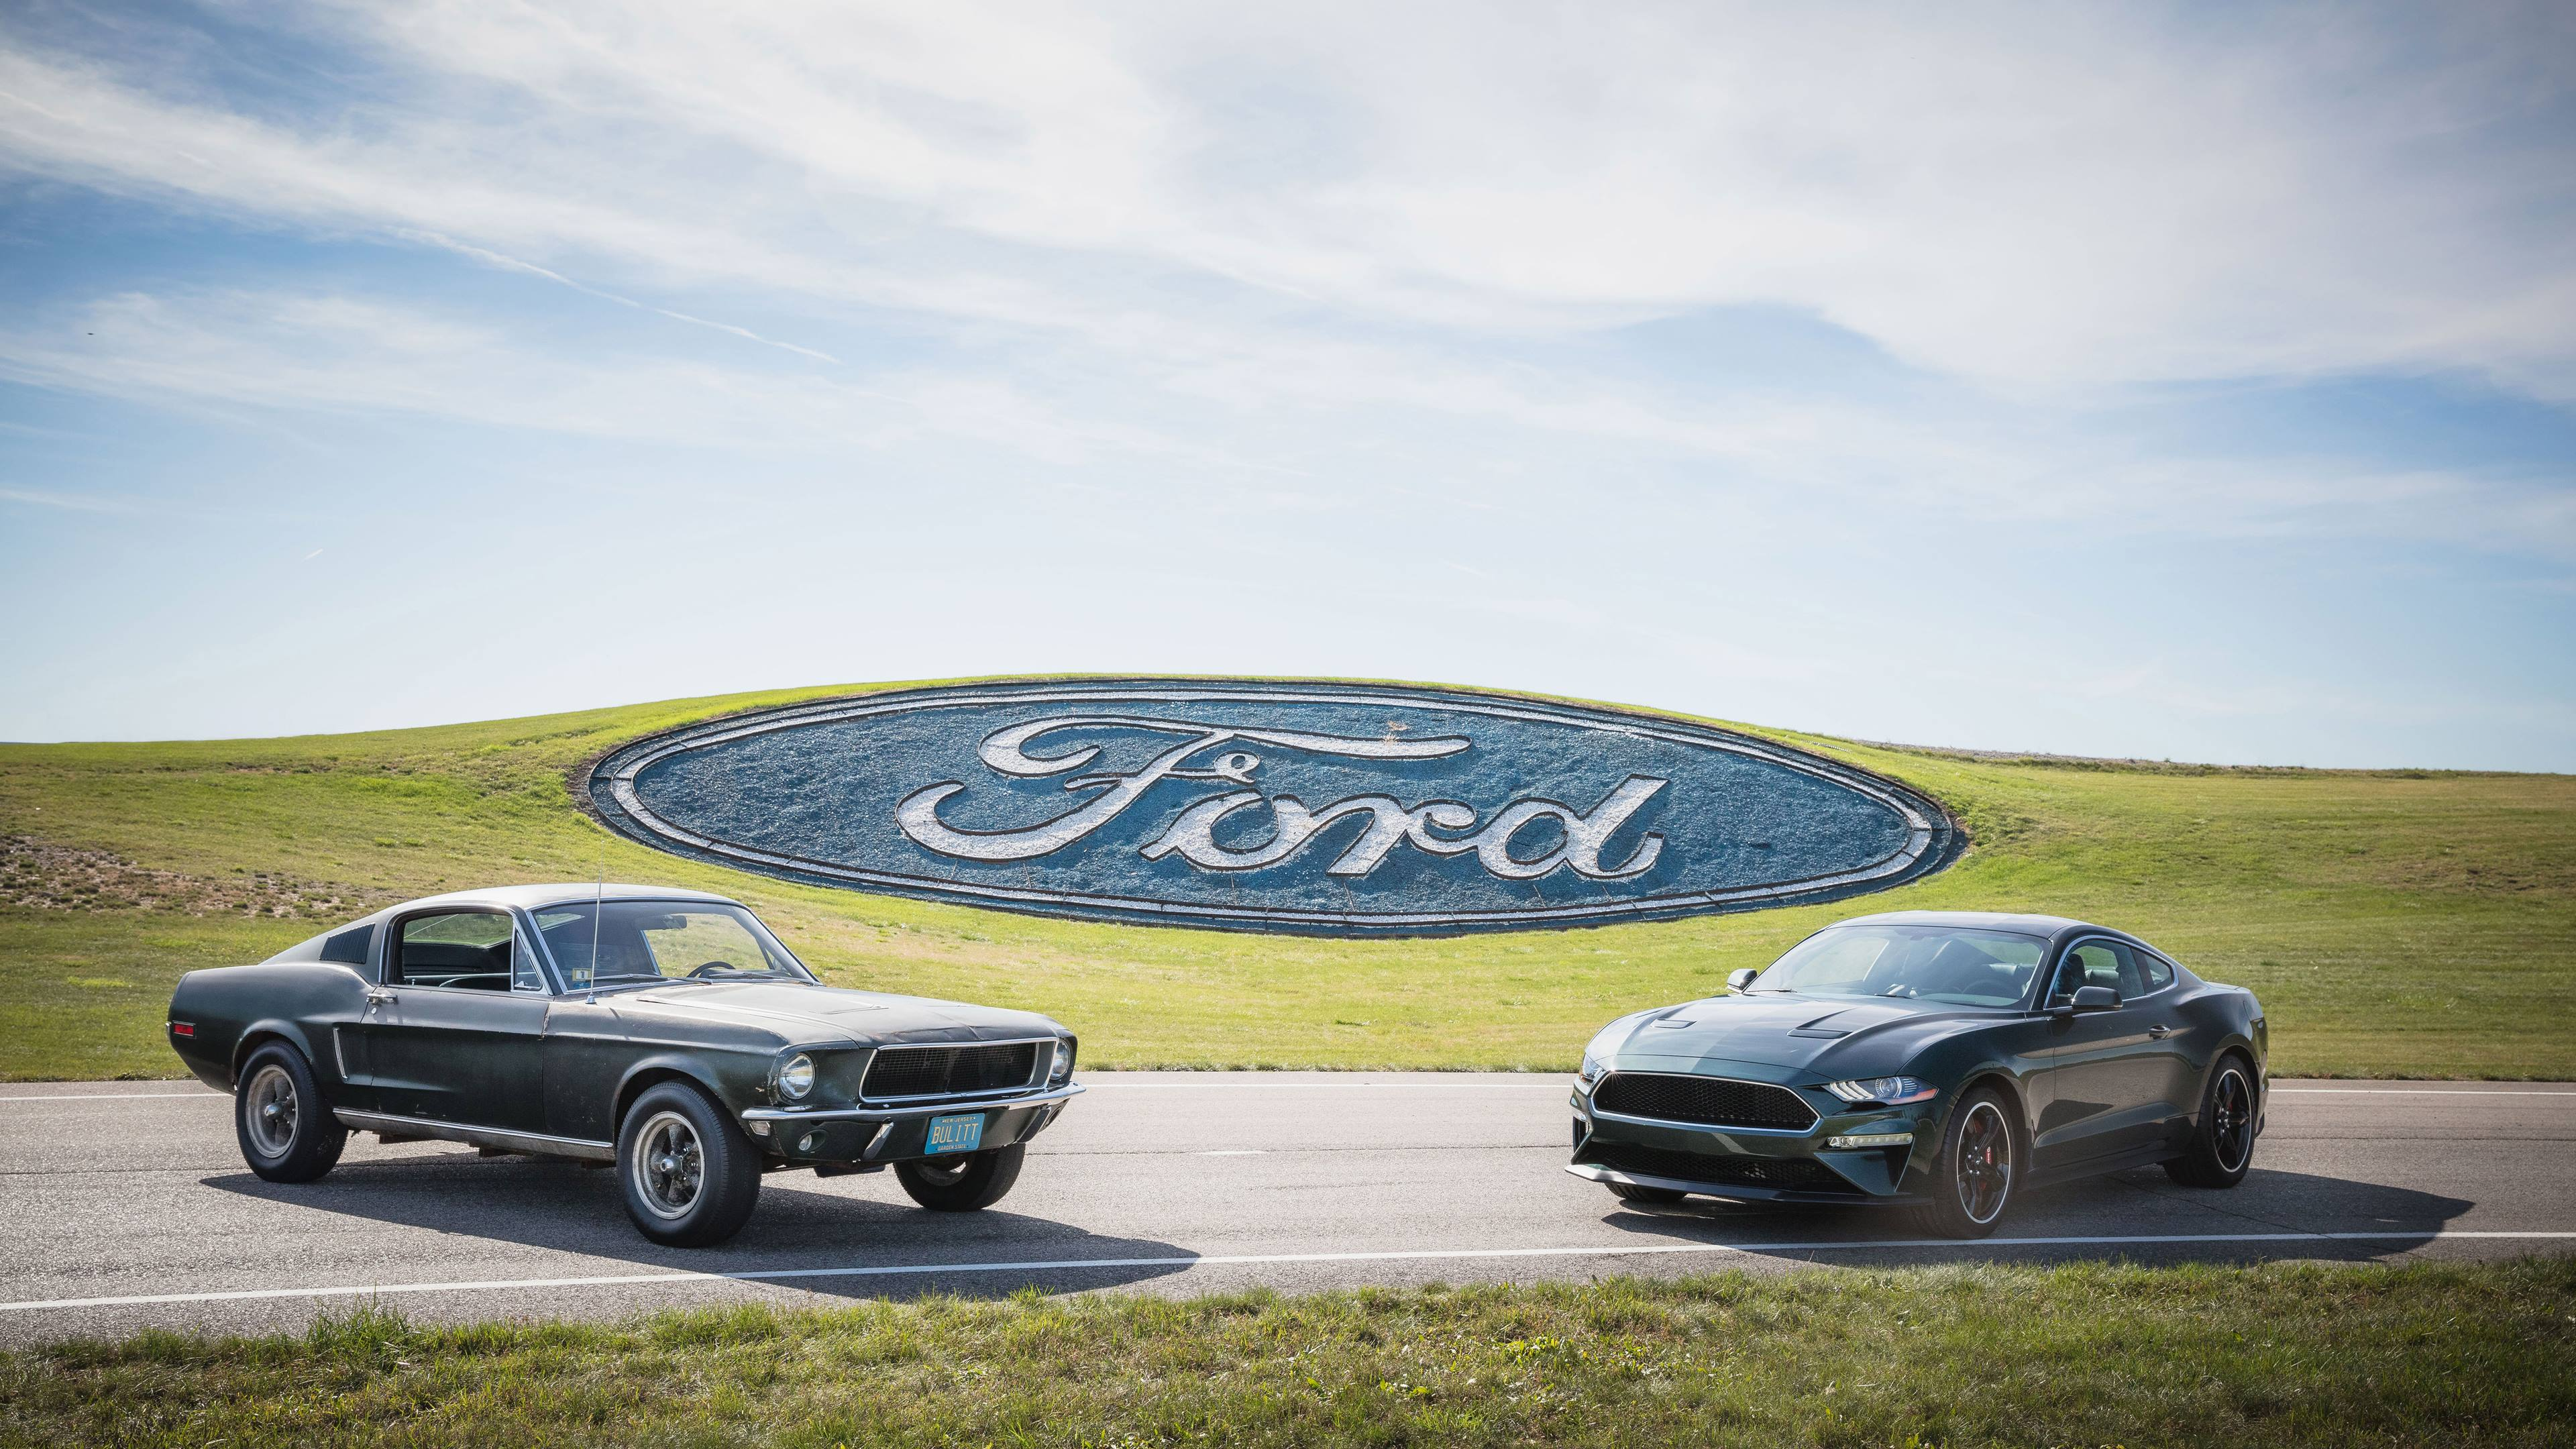 50 years of history - The original 1968 Bullitt Mustang with the new 2019 model